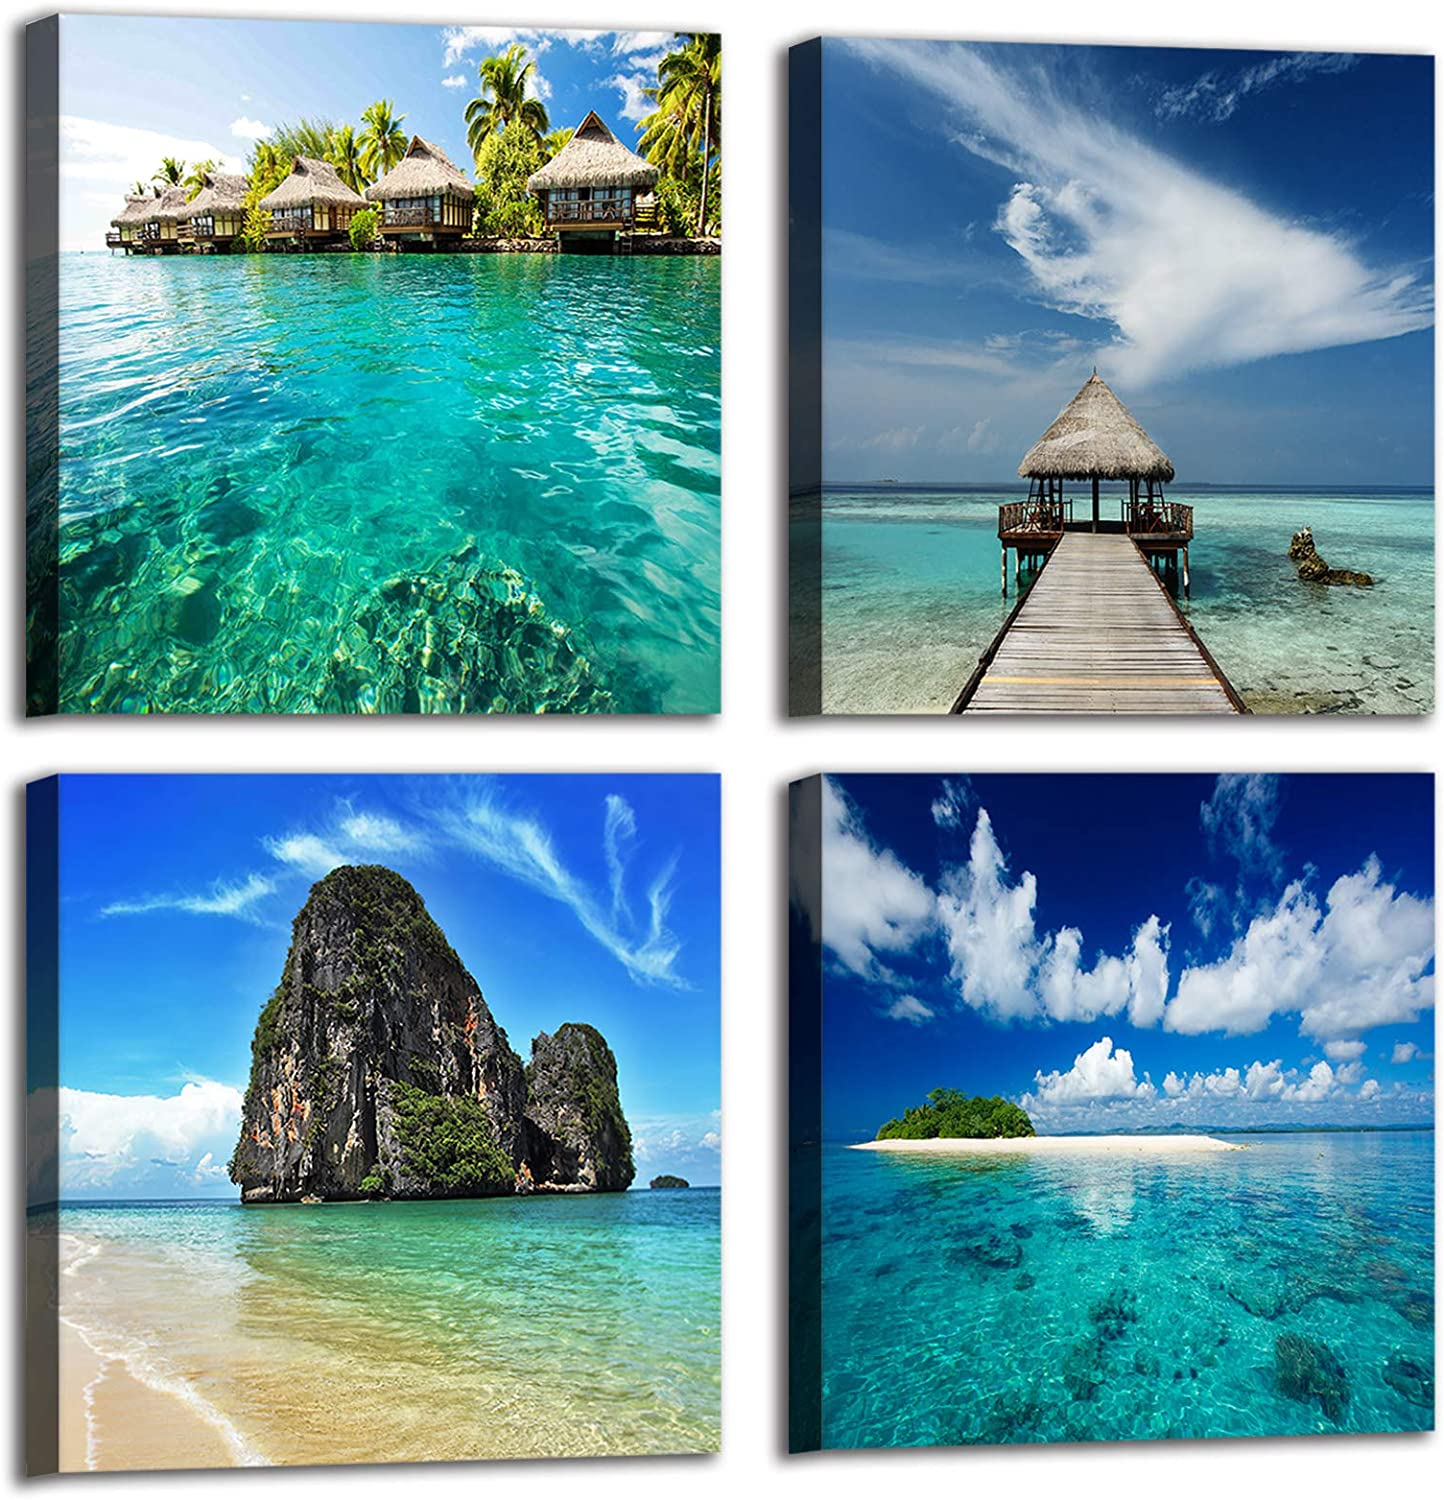 Blue Teal Natural Seaside Landscape Wall Art Pictures, 4 Panels Beach Dreamed Place Coastal Wall Decor, Island Seascape Canvas Prints for Living Room Kitchen Bathroom, Size 12'' x 12'' x 4